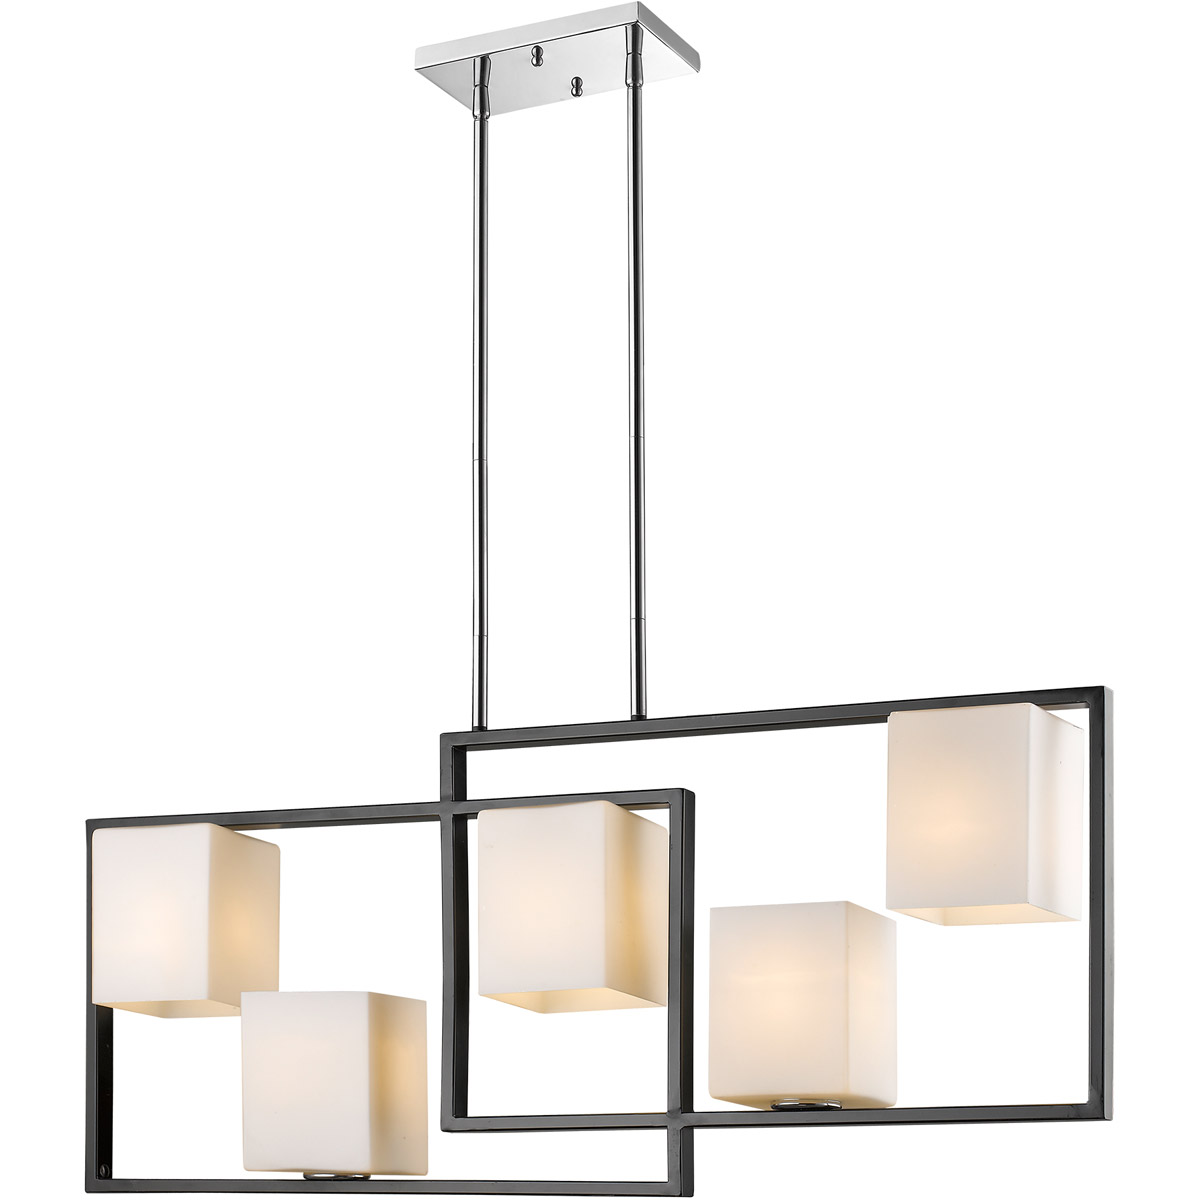 ceiling nickel dc hl light matt collections products white troy mattwhite eglo lighting